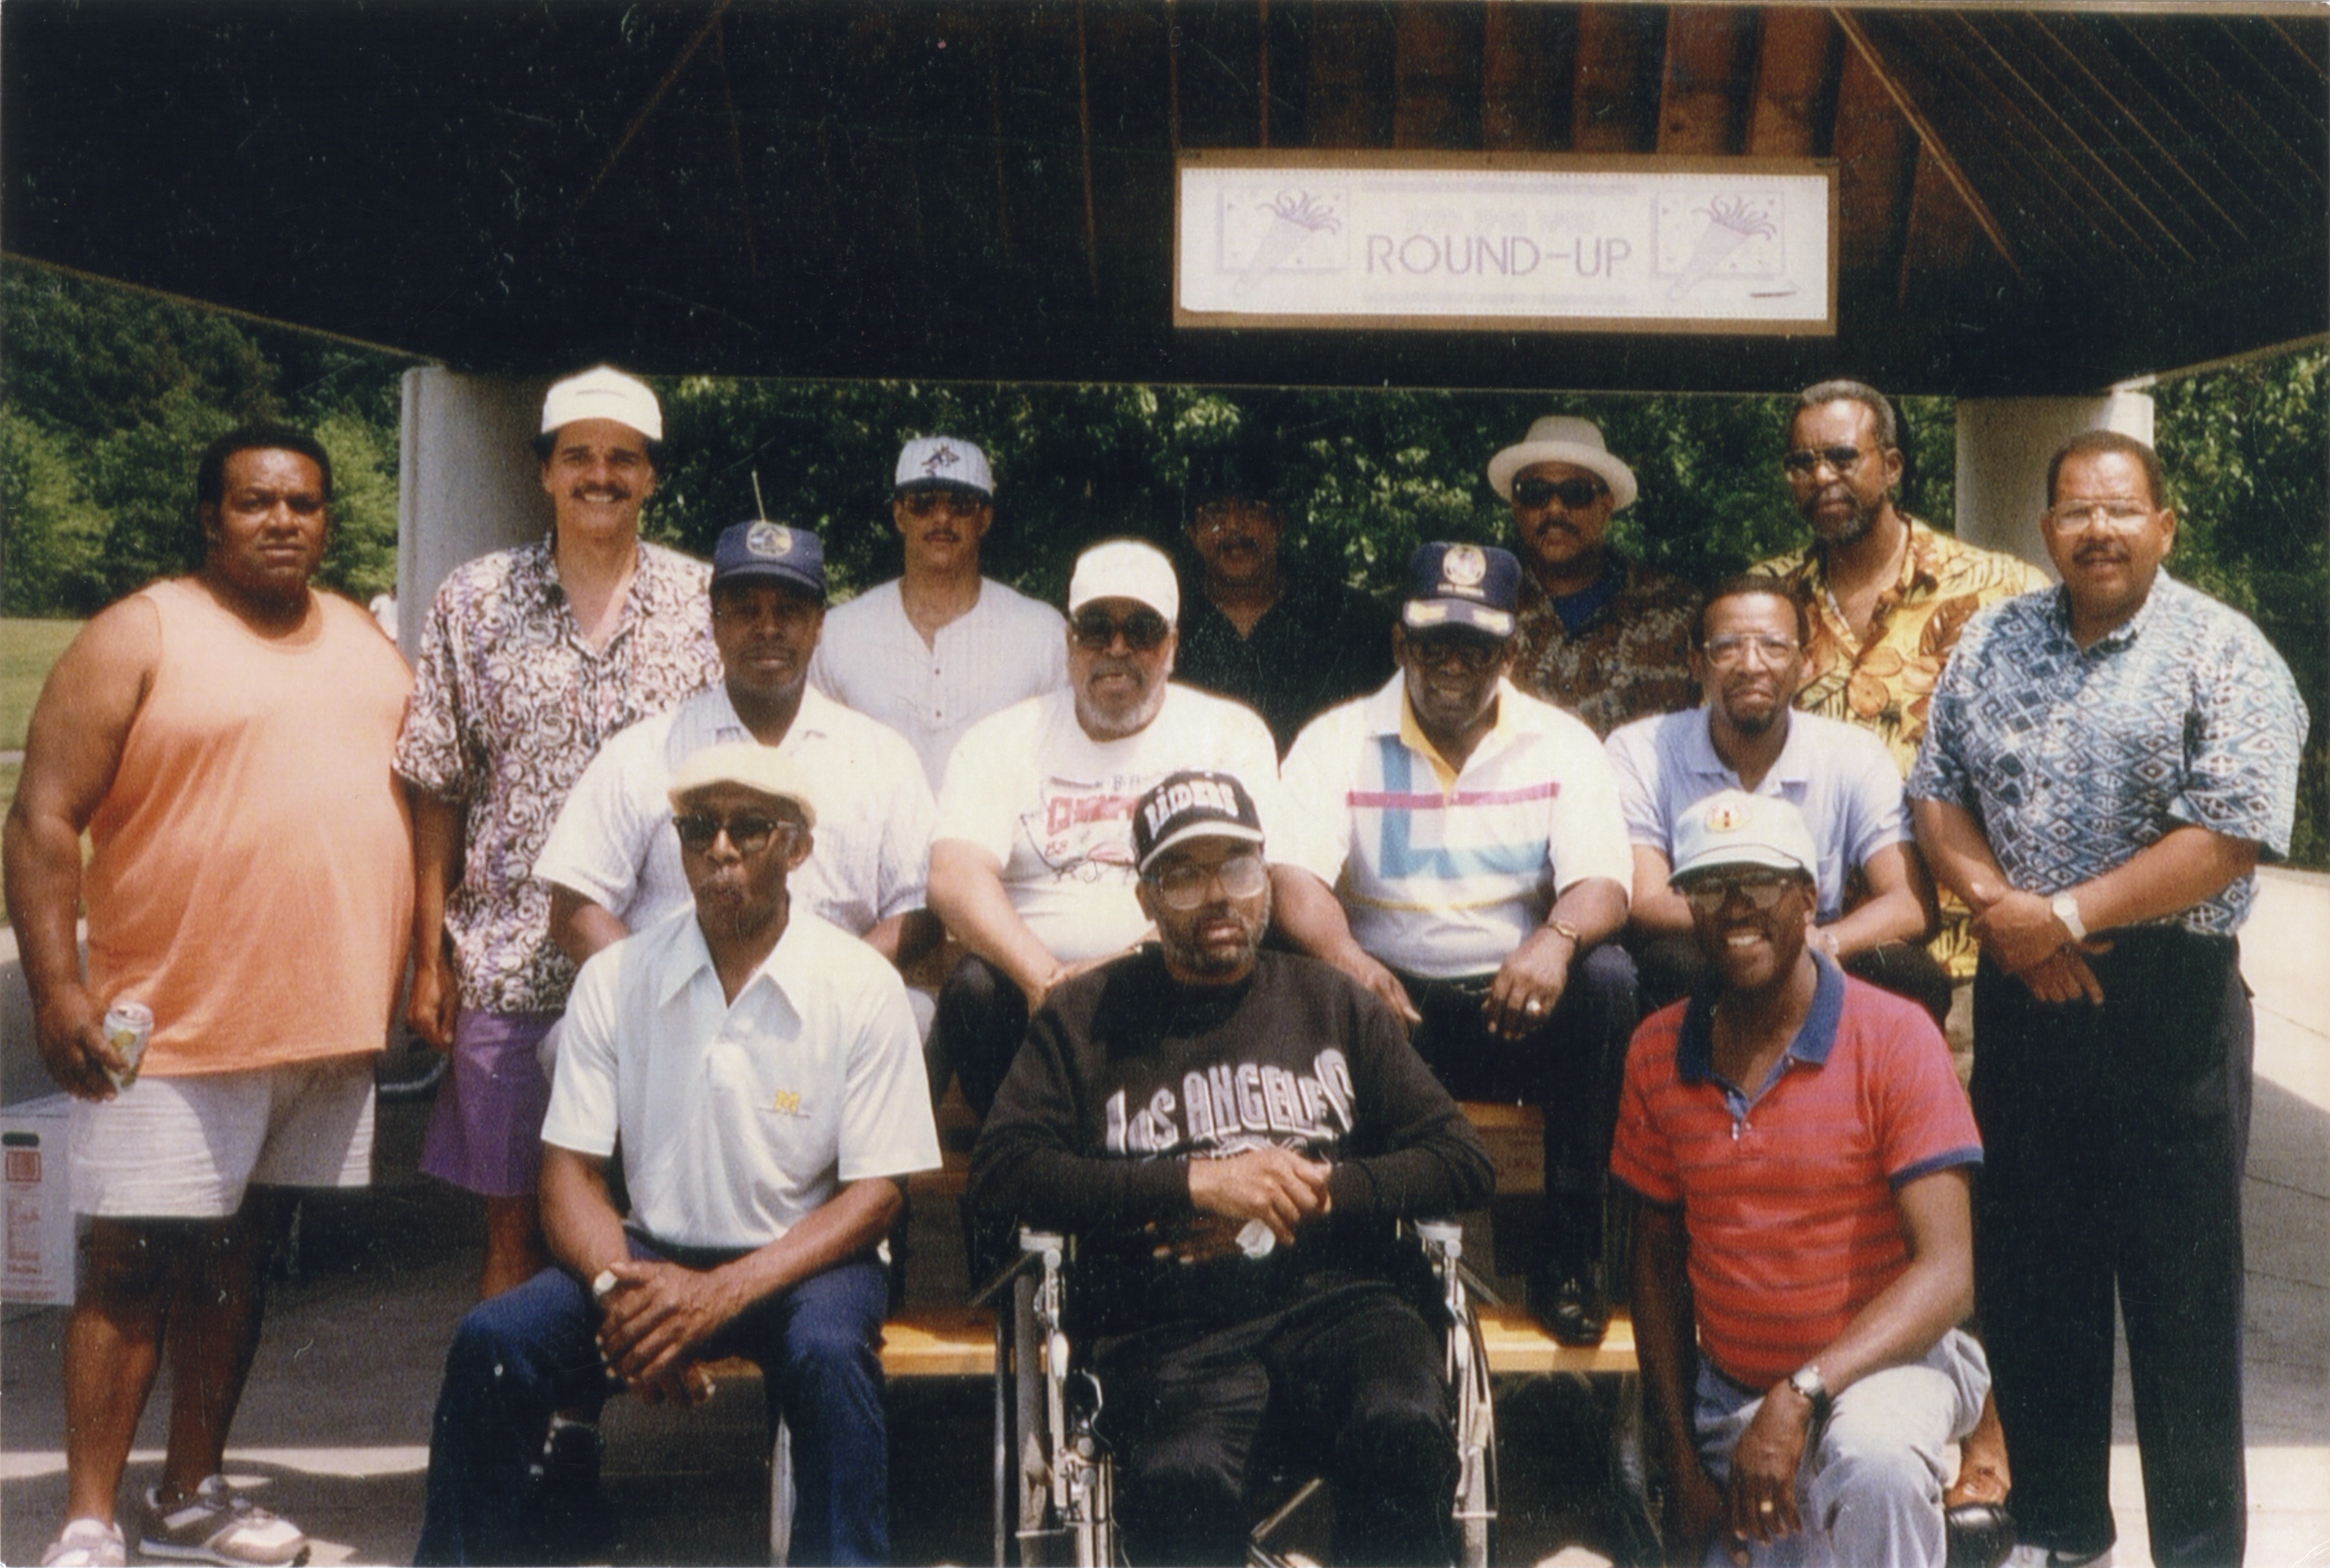 Organizers and Participants in the Neighborhood Round-Up, 1993 image